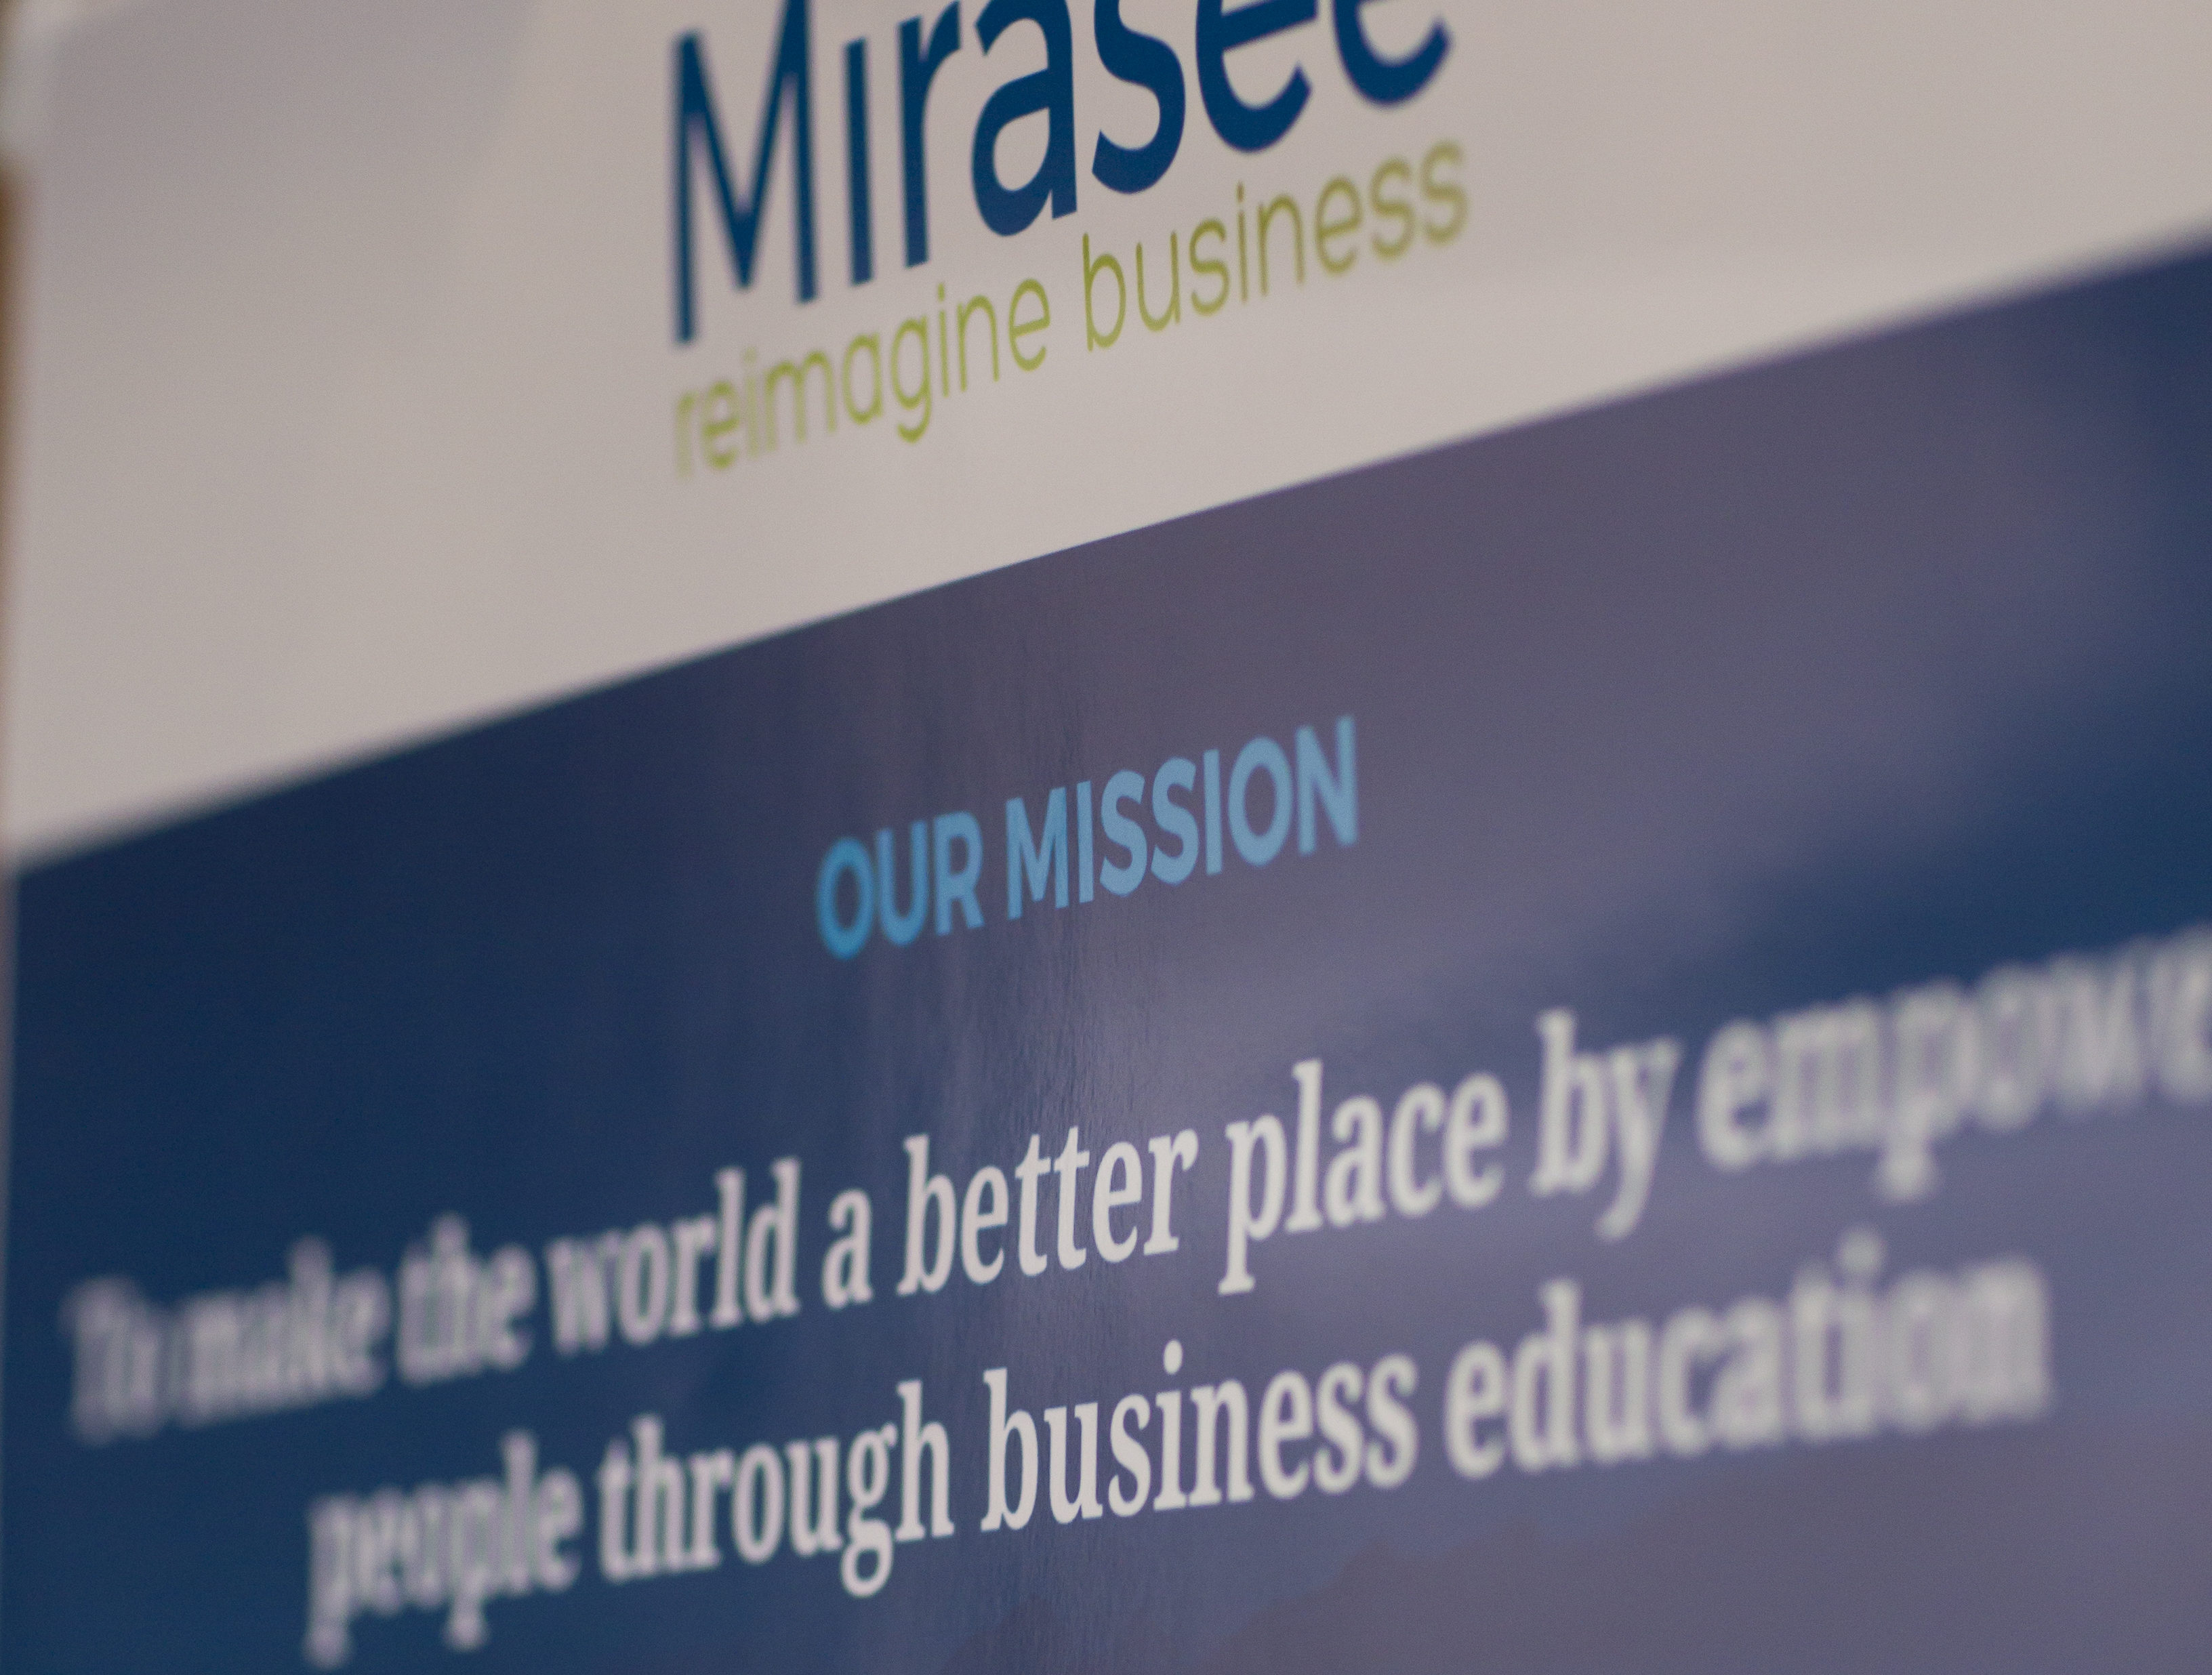 Mirasee Core Values